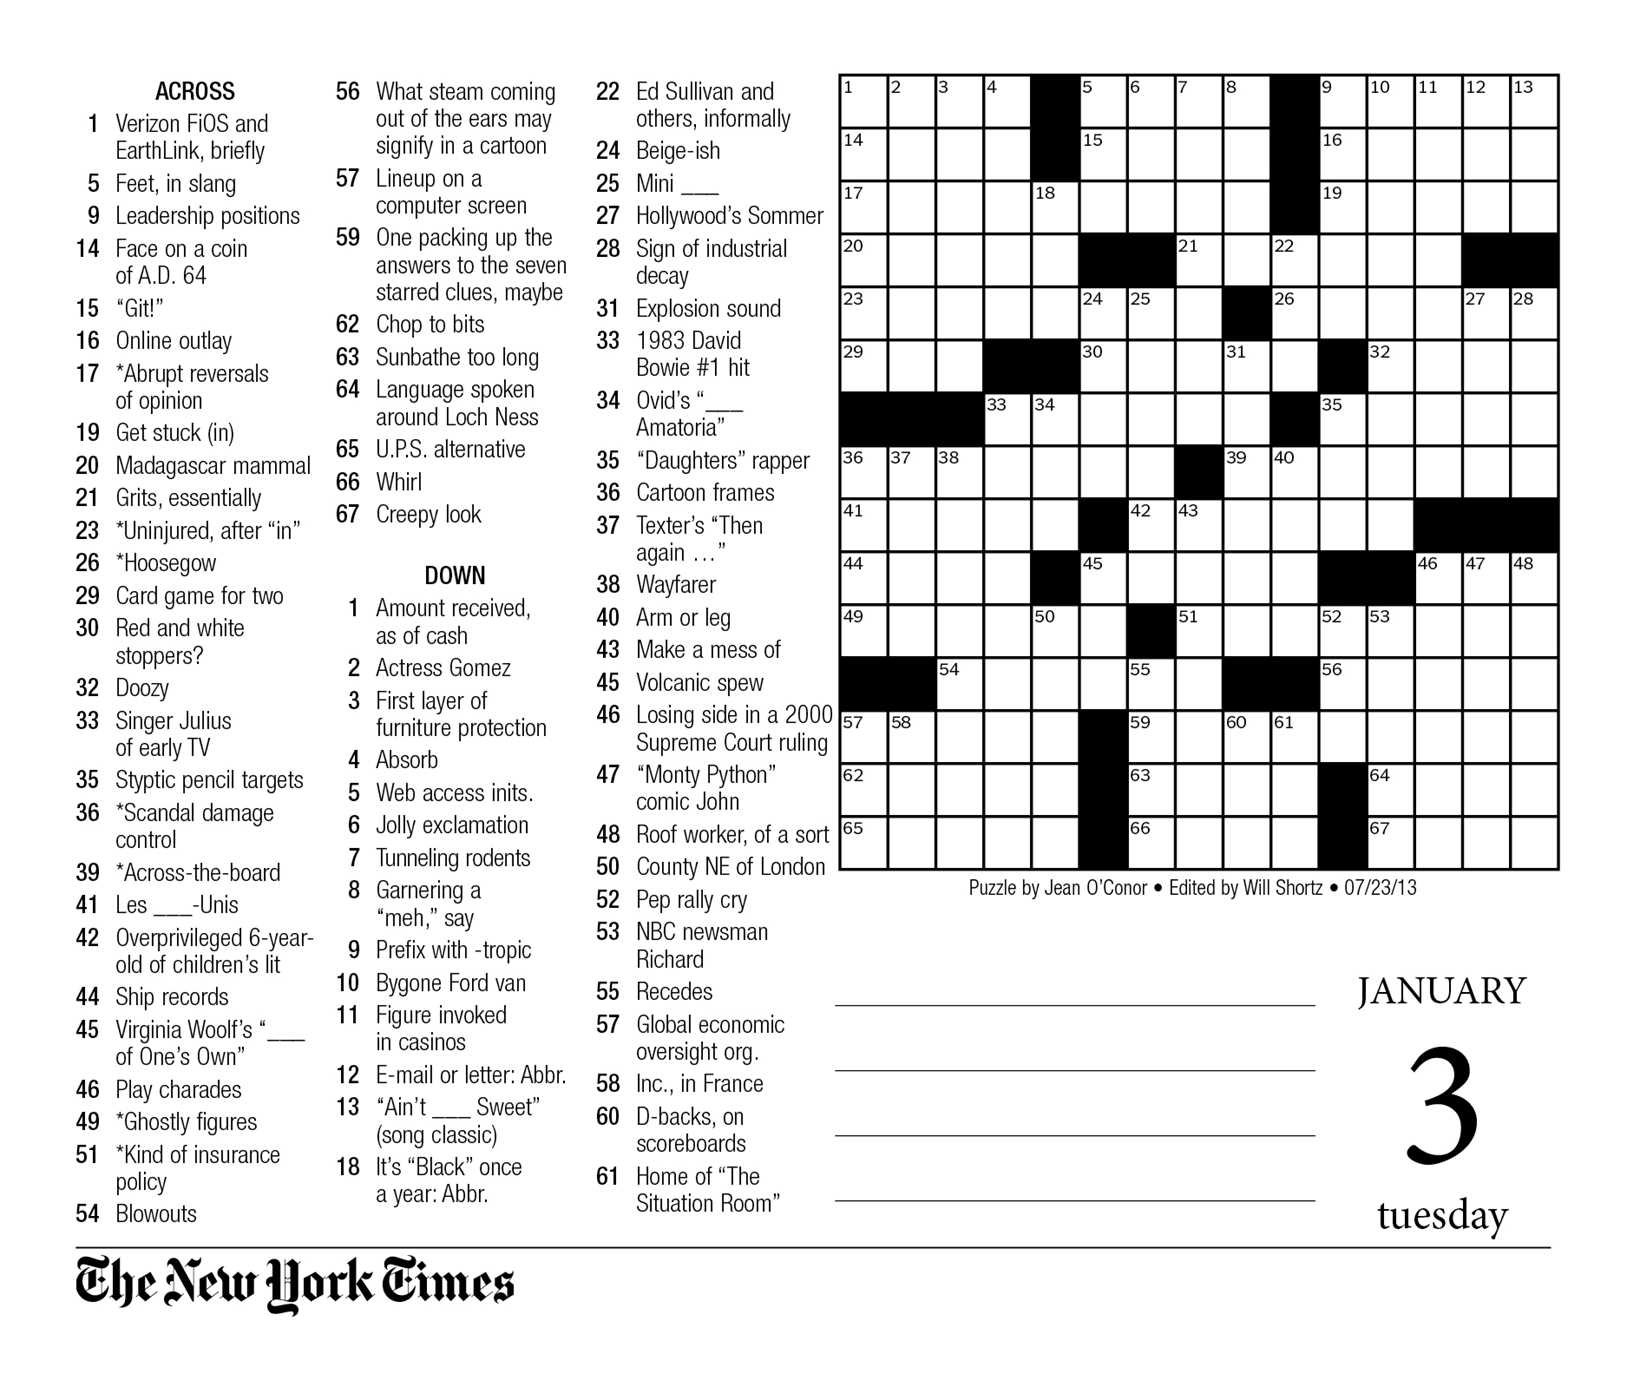 Crosswords Sunday Crossword Puzzle Printable ~ Themarketonholly - Printable Sunday Crossword Puzzles New York Times